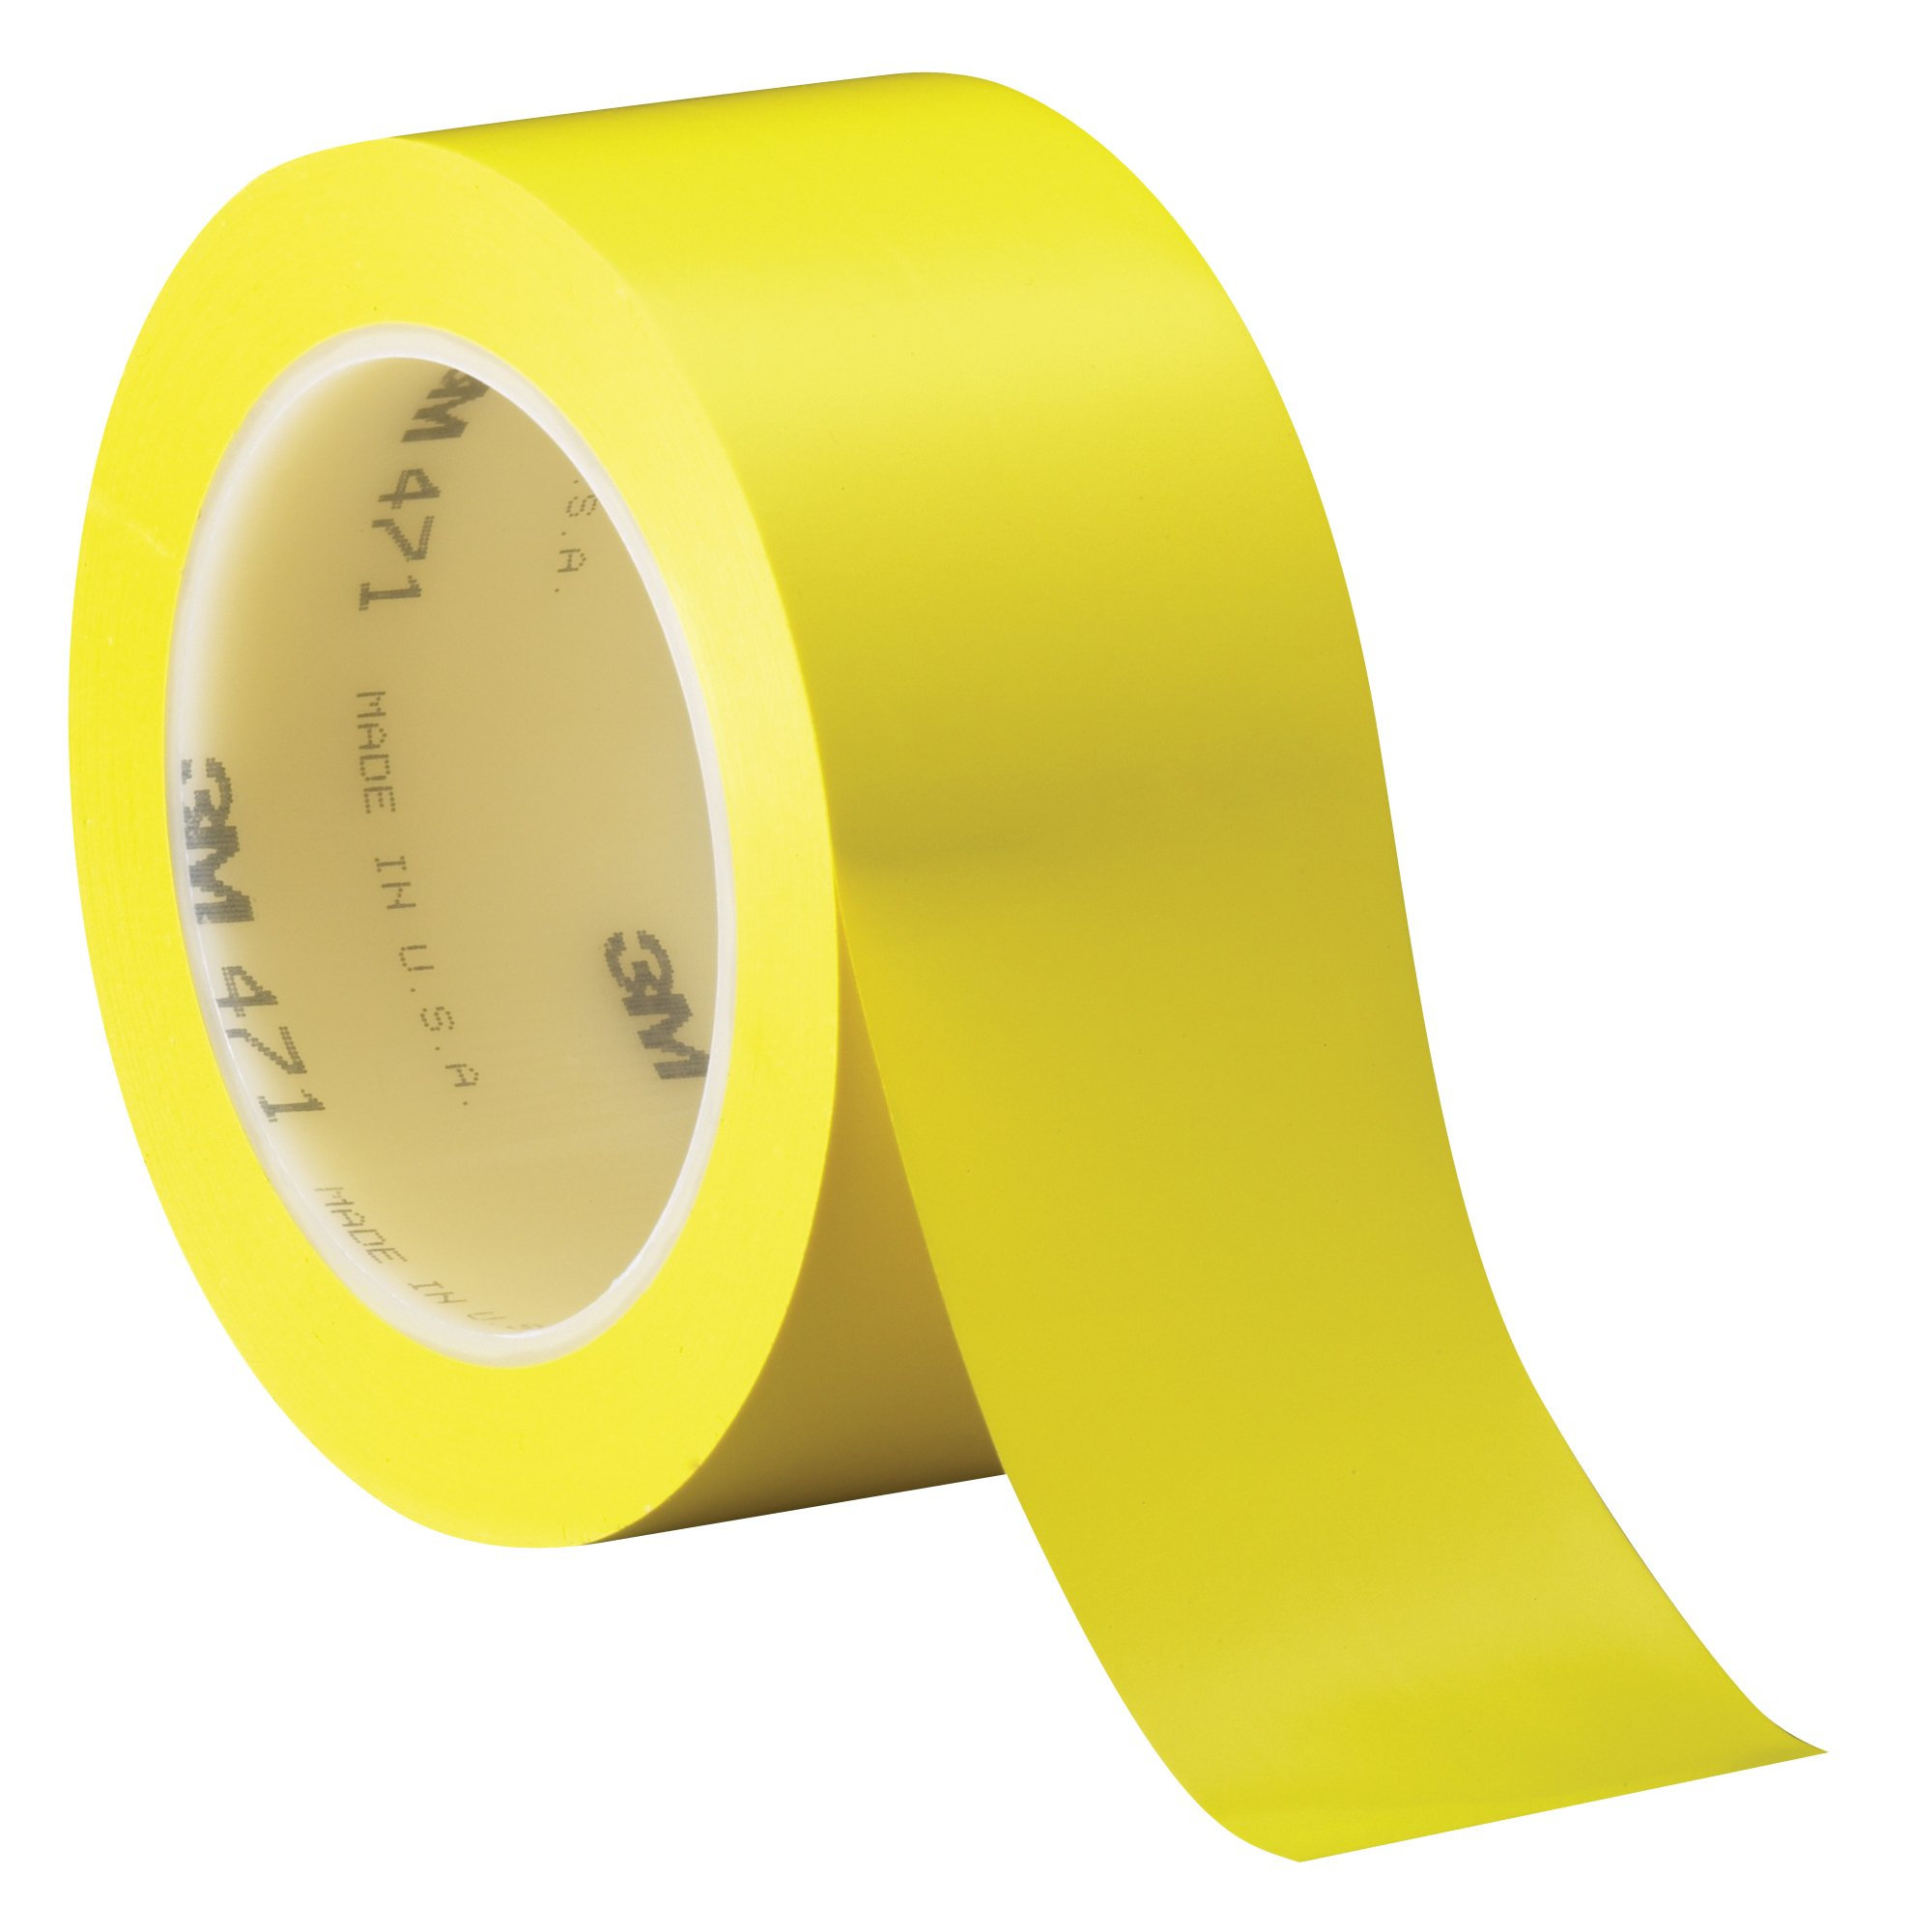 3M Vinyl Tape 471 Yellow, 2 in x 36 yd, Conveniently Packaged (Pack of 1)